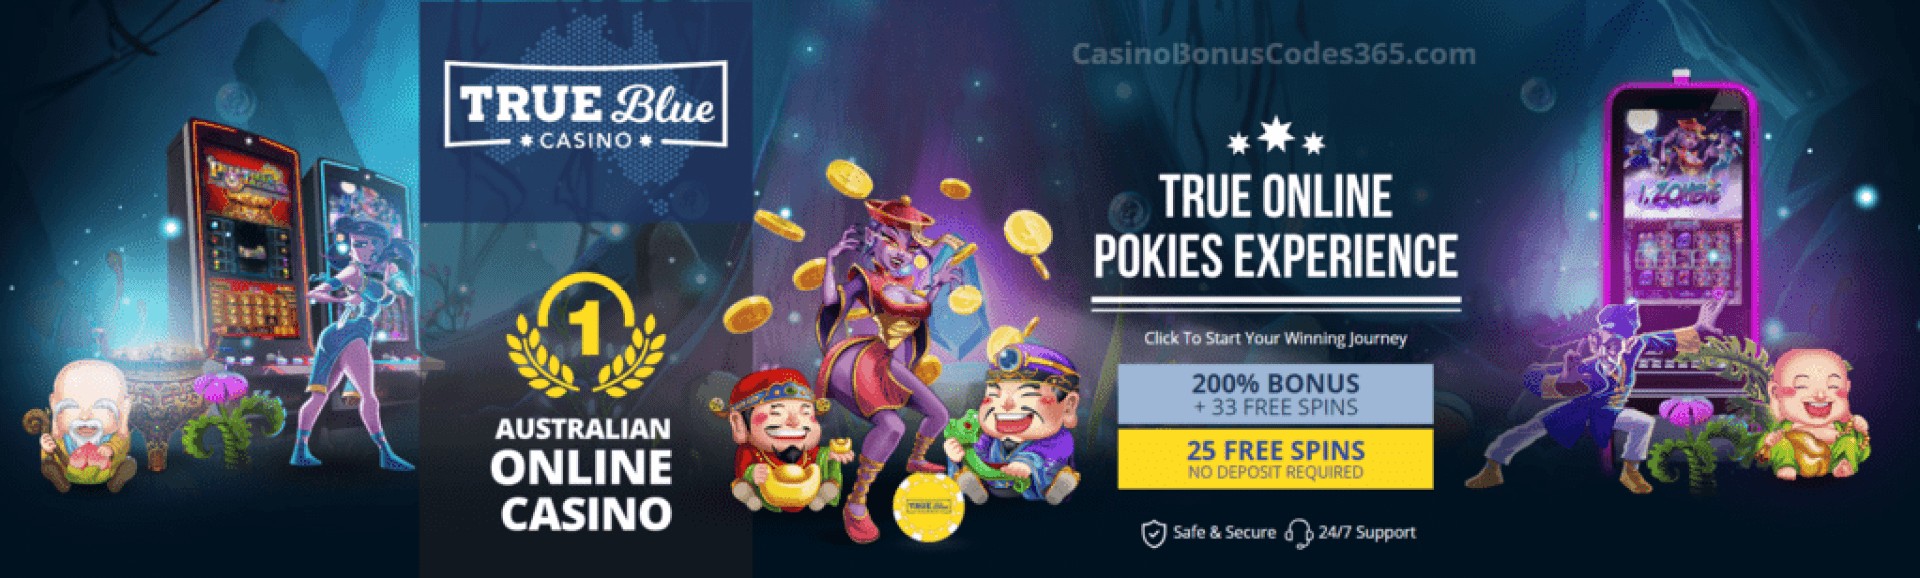 True Blue Casino 200% Match plus 58 FREE Spins Welcome Bonus